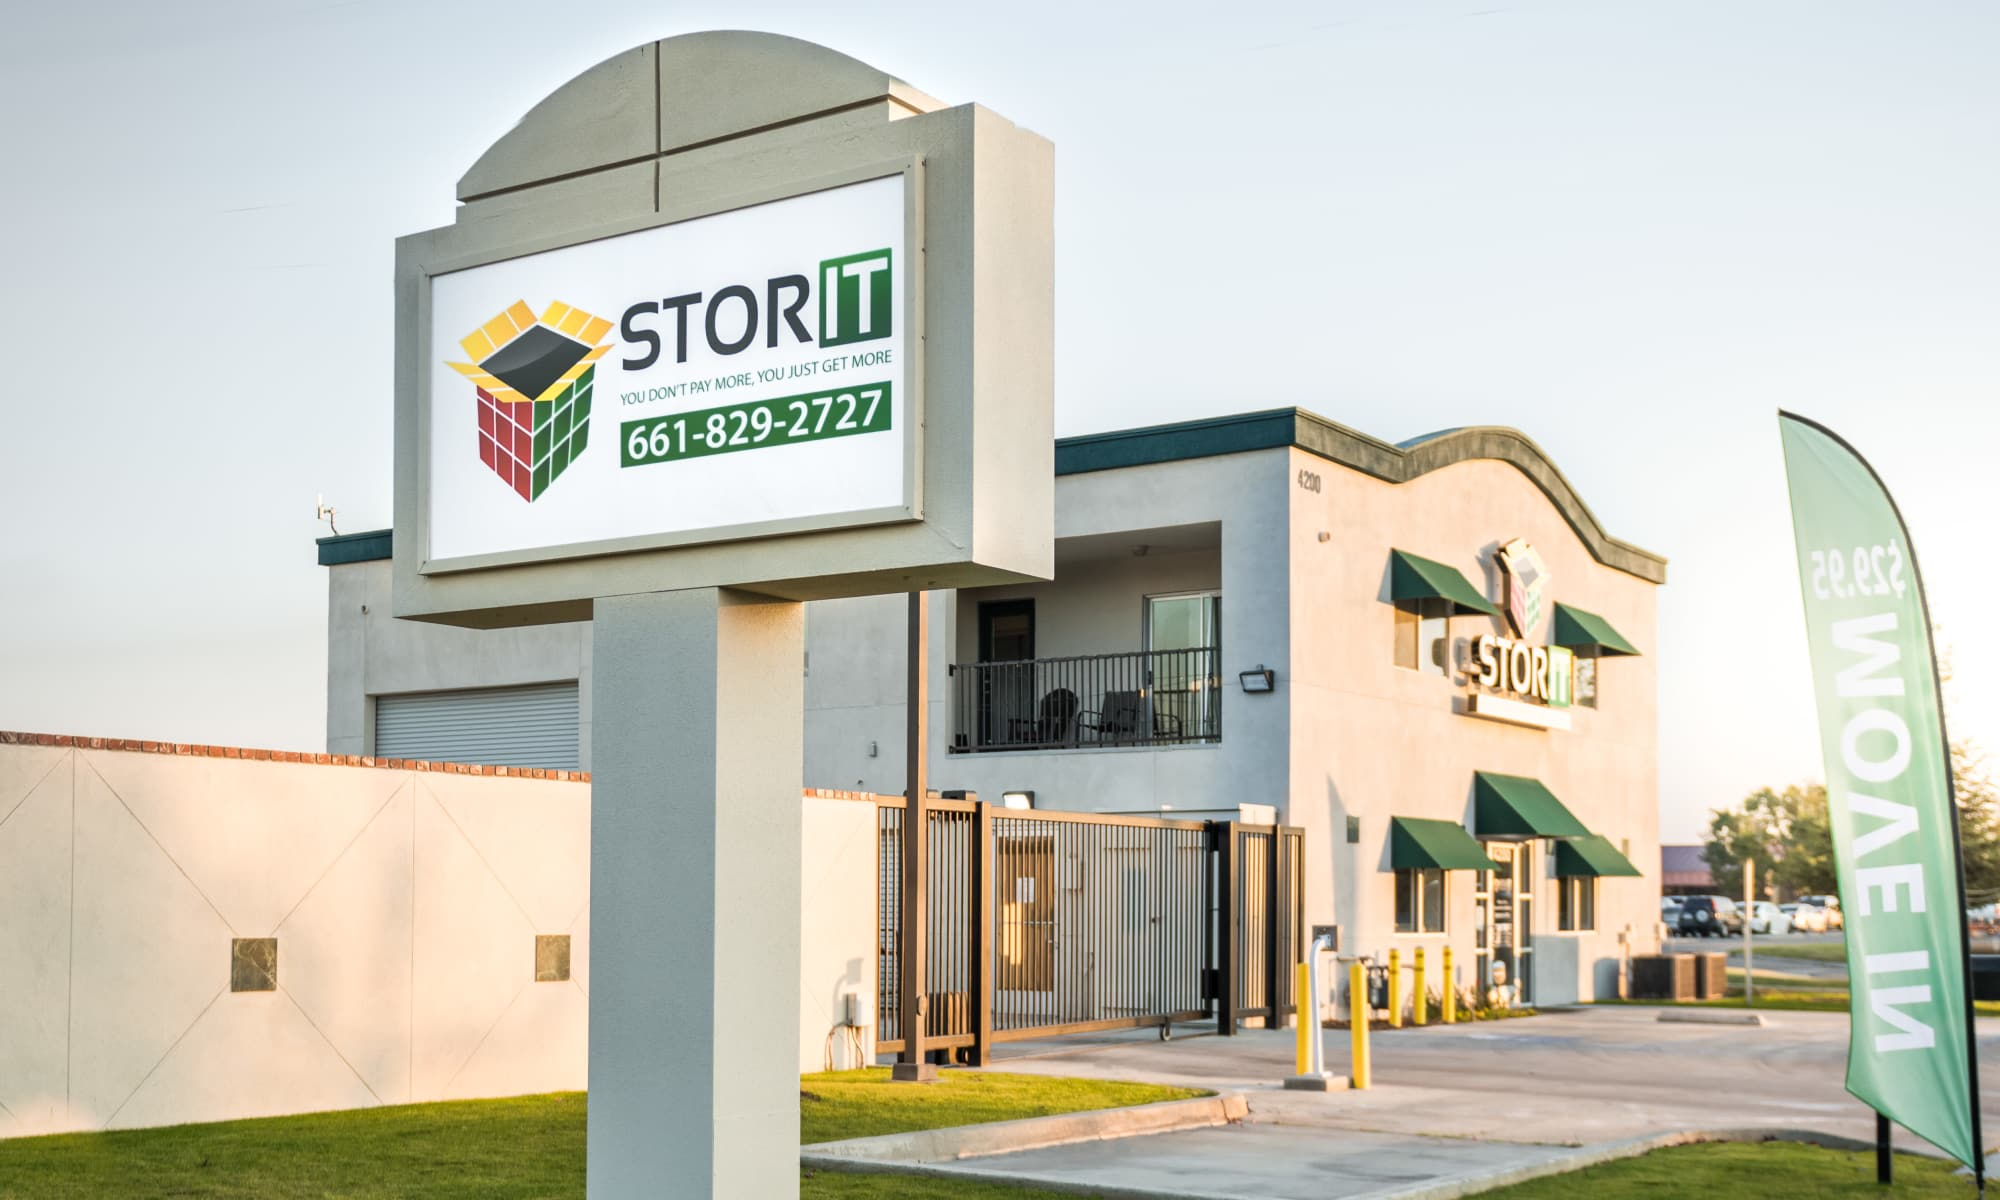 Drive up storage units at Stor It Self Storage in Bakersfield, California